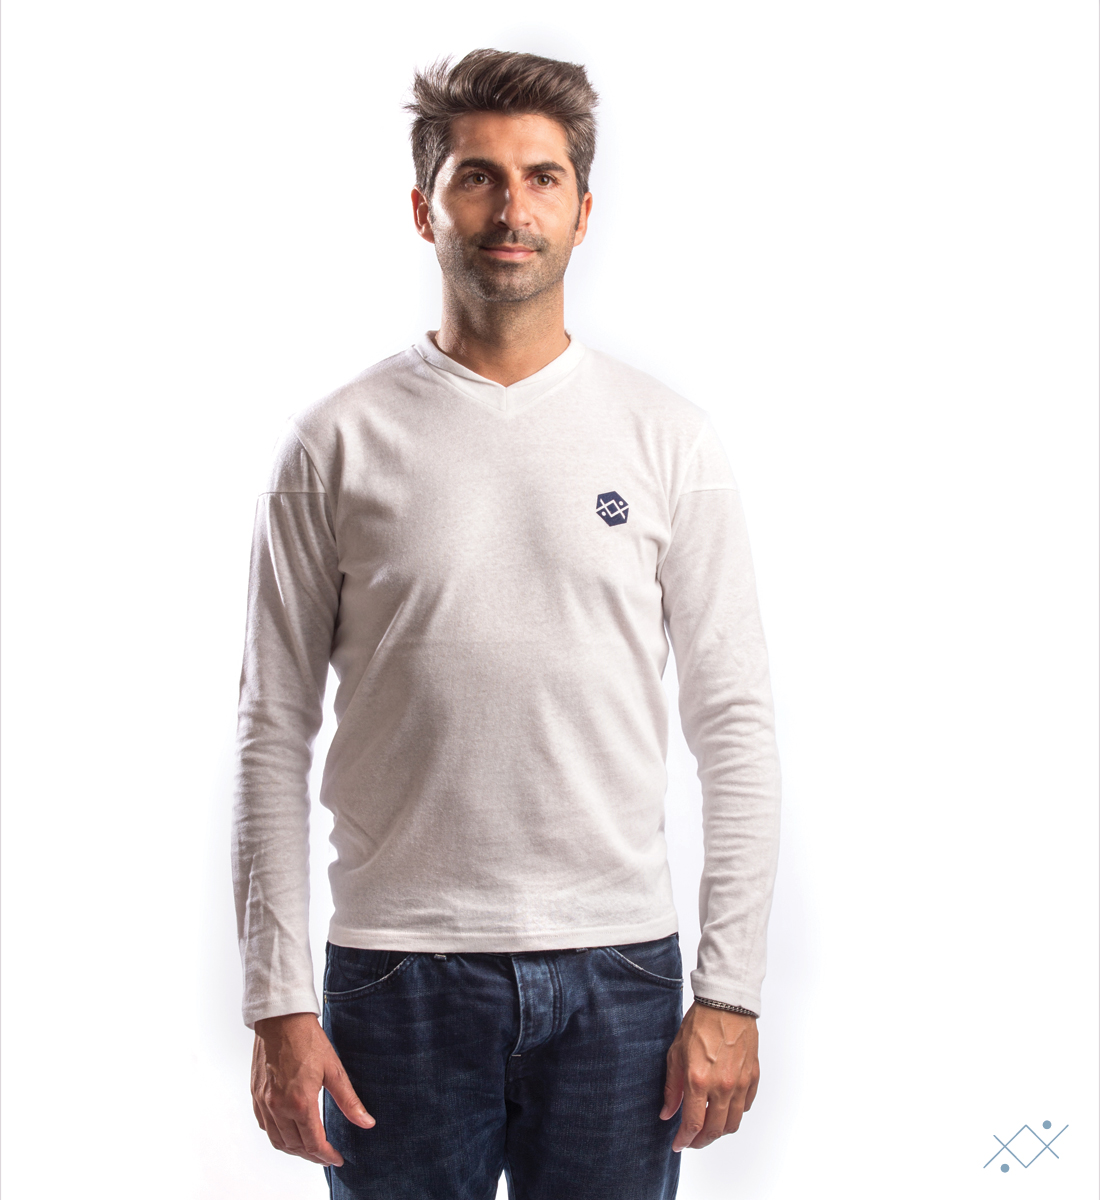 Classic white knitwear with applied velvet logo on light blue - list